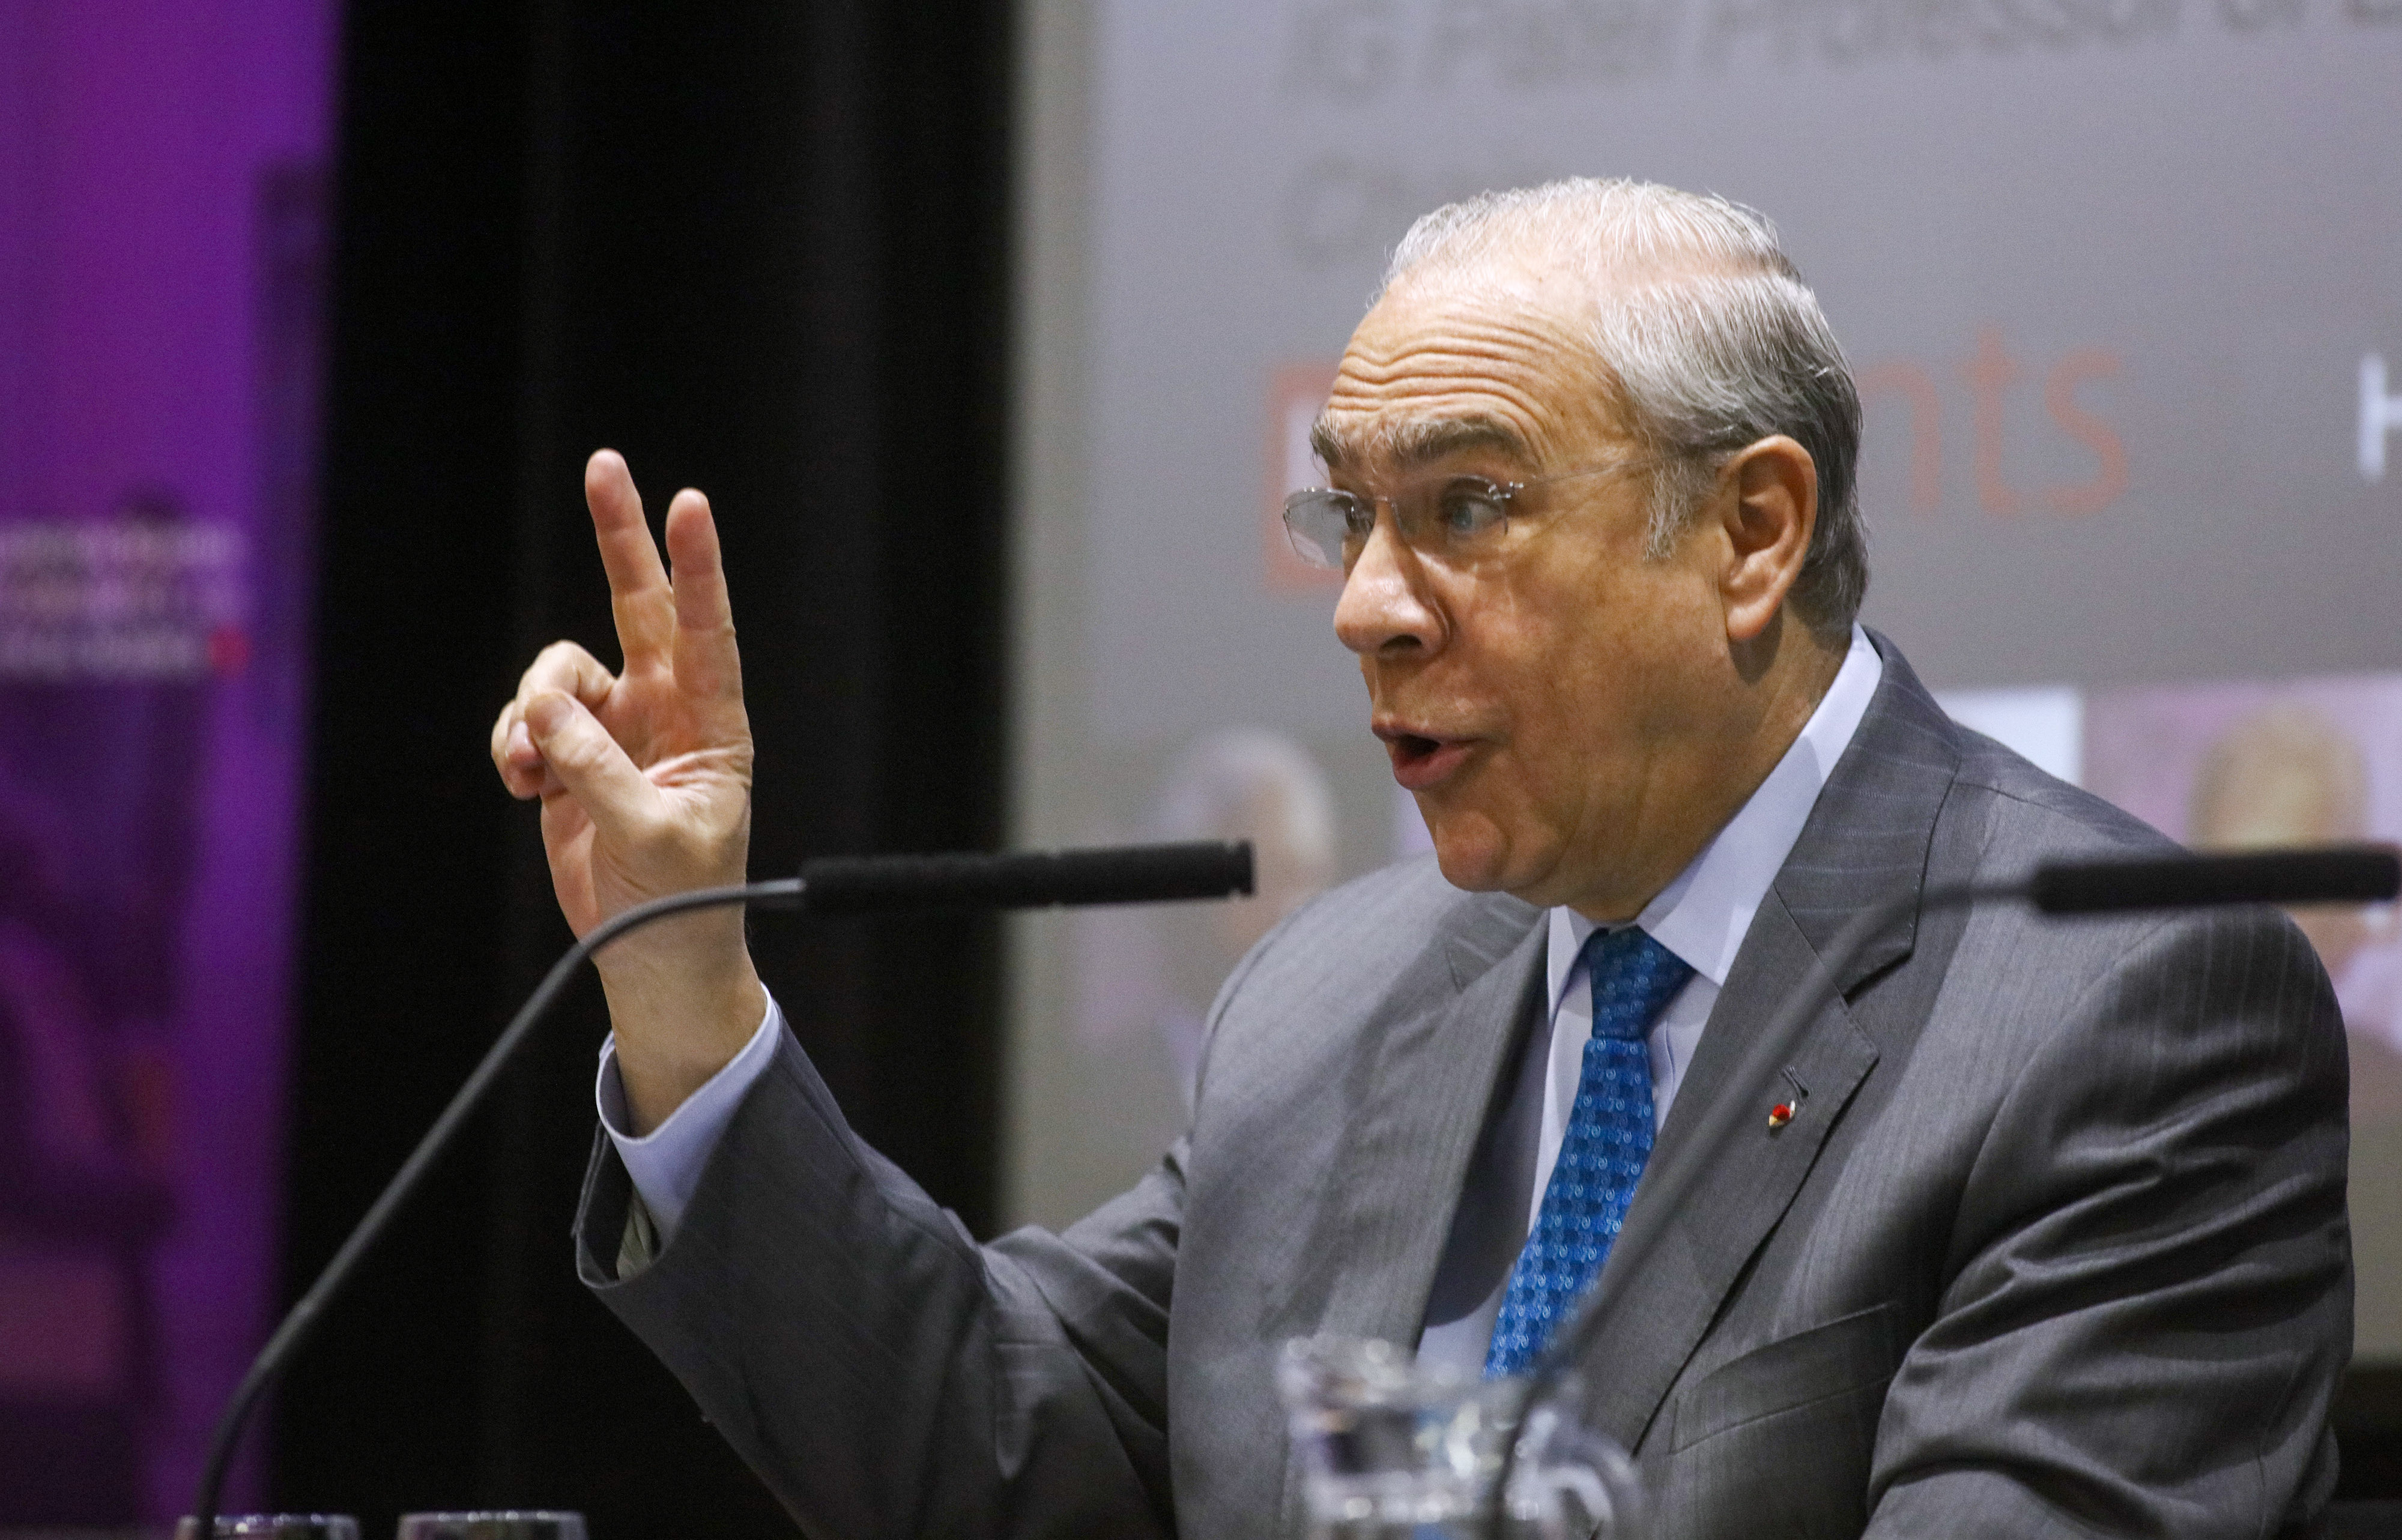 Jose Angel Gurria, secretary-general of the Organization for Economic Cooperation and Development (OECD), gestures while waiting to make a speech at the London School of Economics (LSE) in London, U.K., on Wednesday, April 27, 2016. The Organization for Economic Cooperation and Development became the latest international body to warn the U.K. that leaving the European Union would cause lasting damage to the economy, earning rebukes from campaigners for a so-called Brexit.